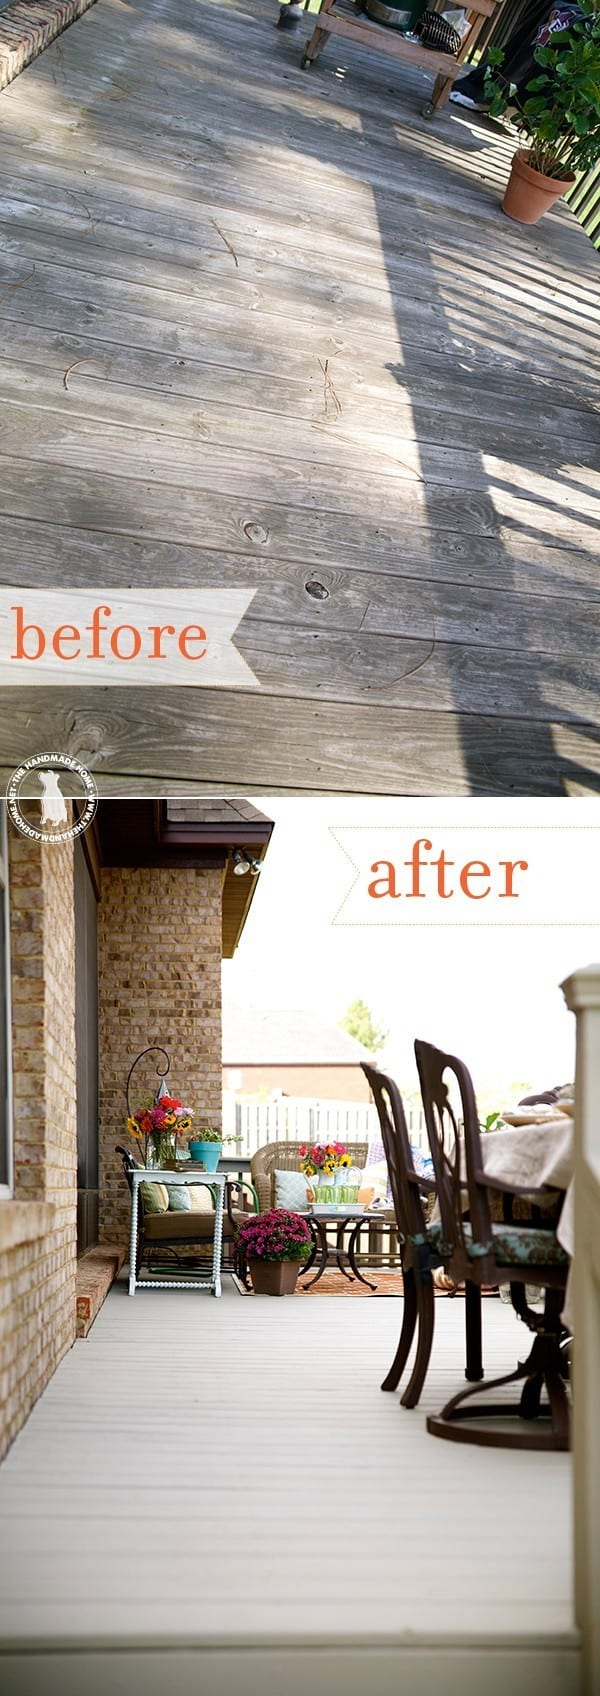 tips for creating an outdoor space - fix old deck boards